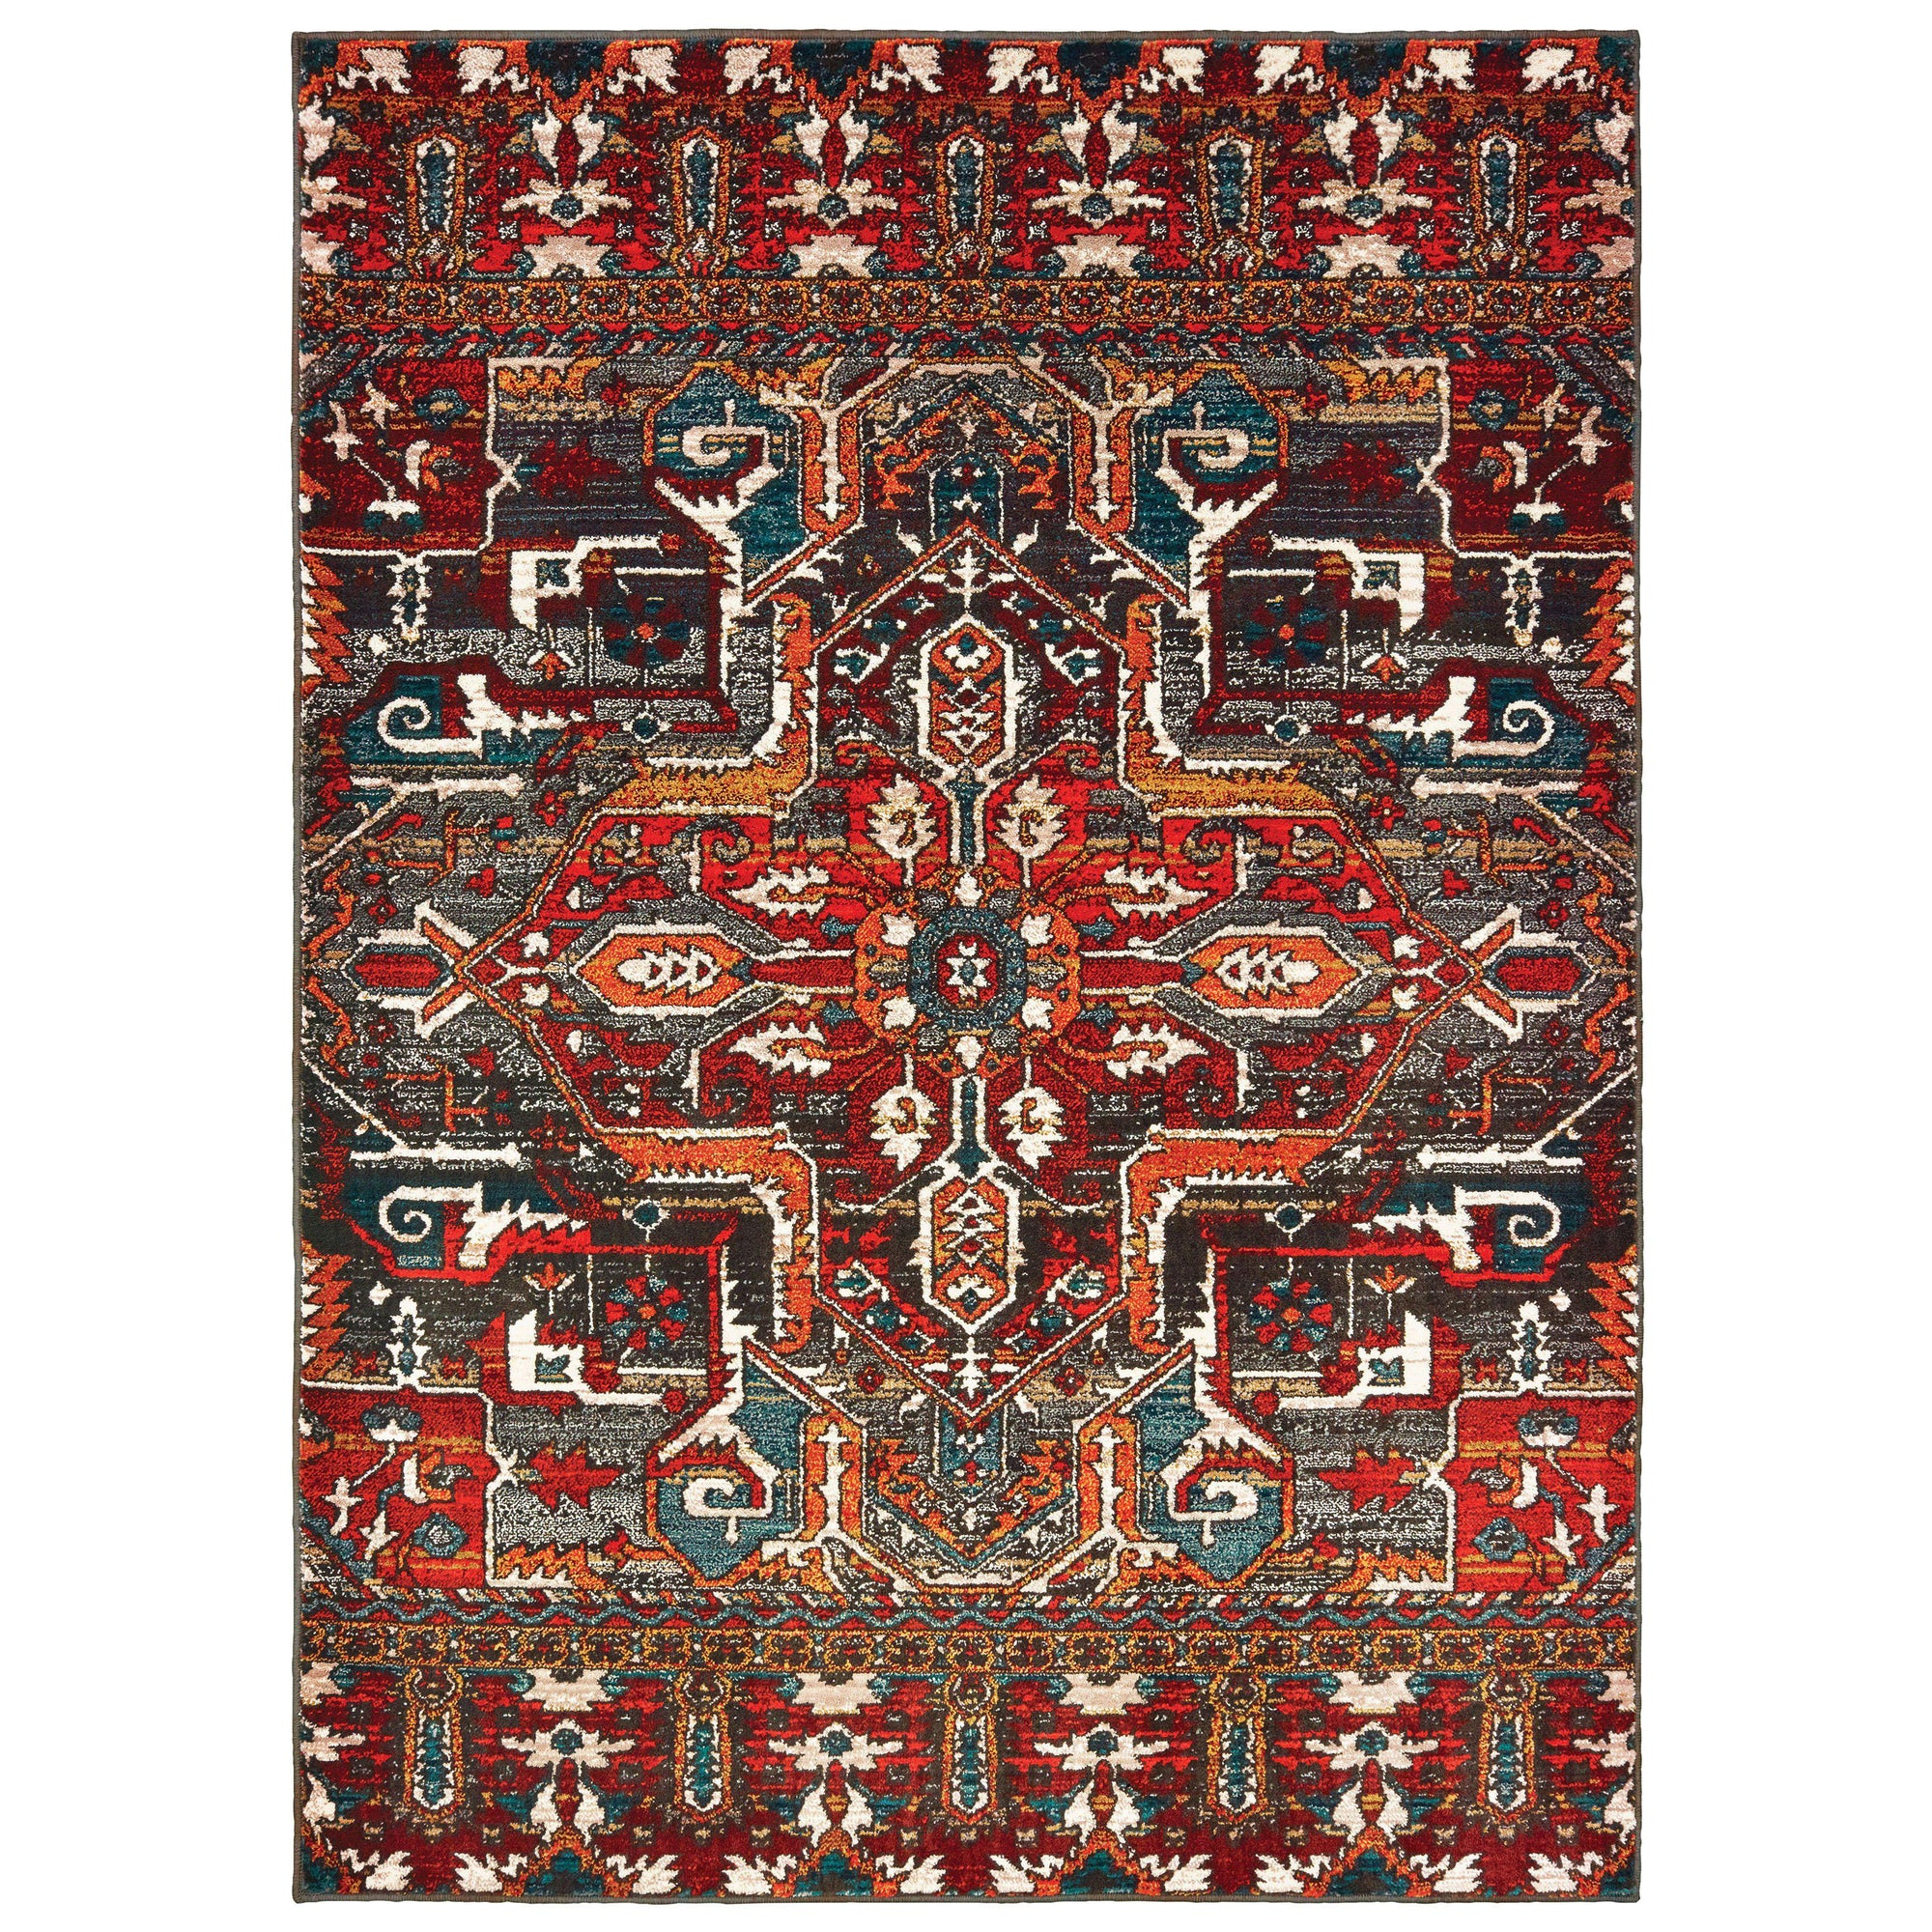 "Sedona - 9575A - Red/Orange-Area Rug-Oriental Weavers-1'10"" X 3' 0""-The Rug Truck"